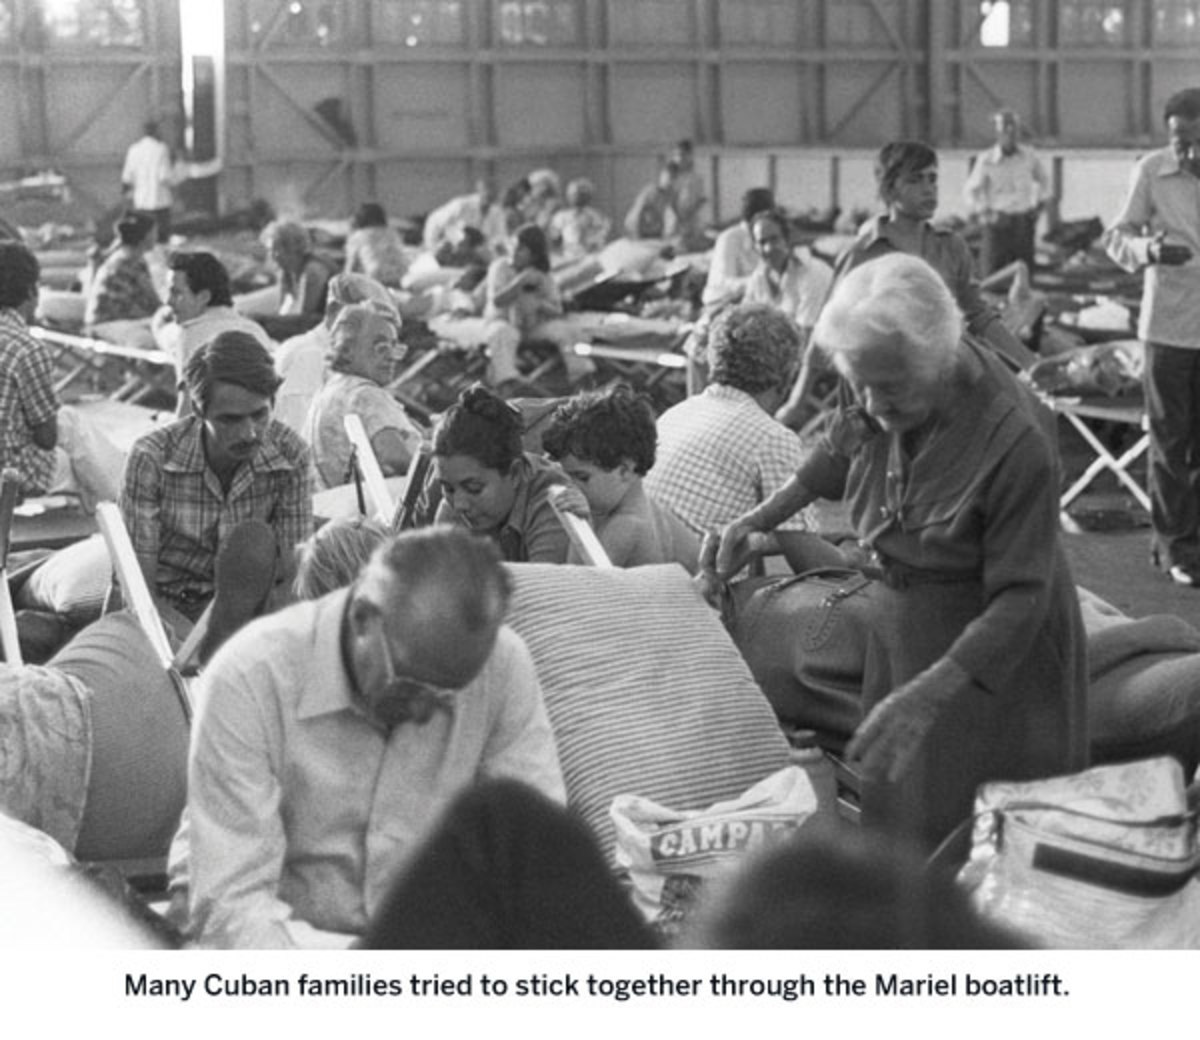 Many Cuban families tried to stick together through the Mariel boatlift.